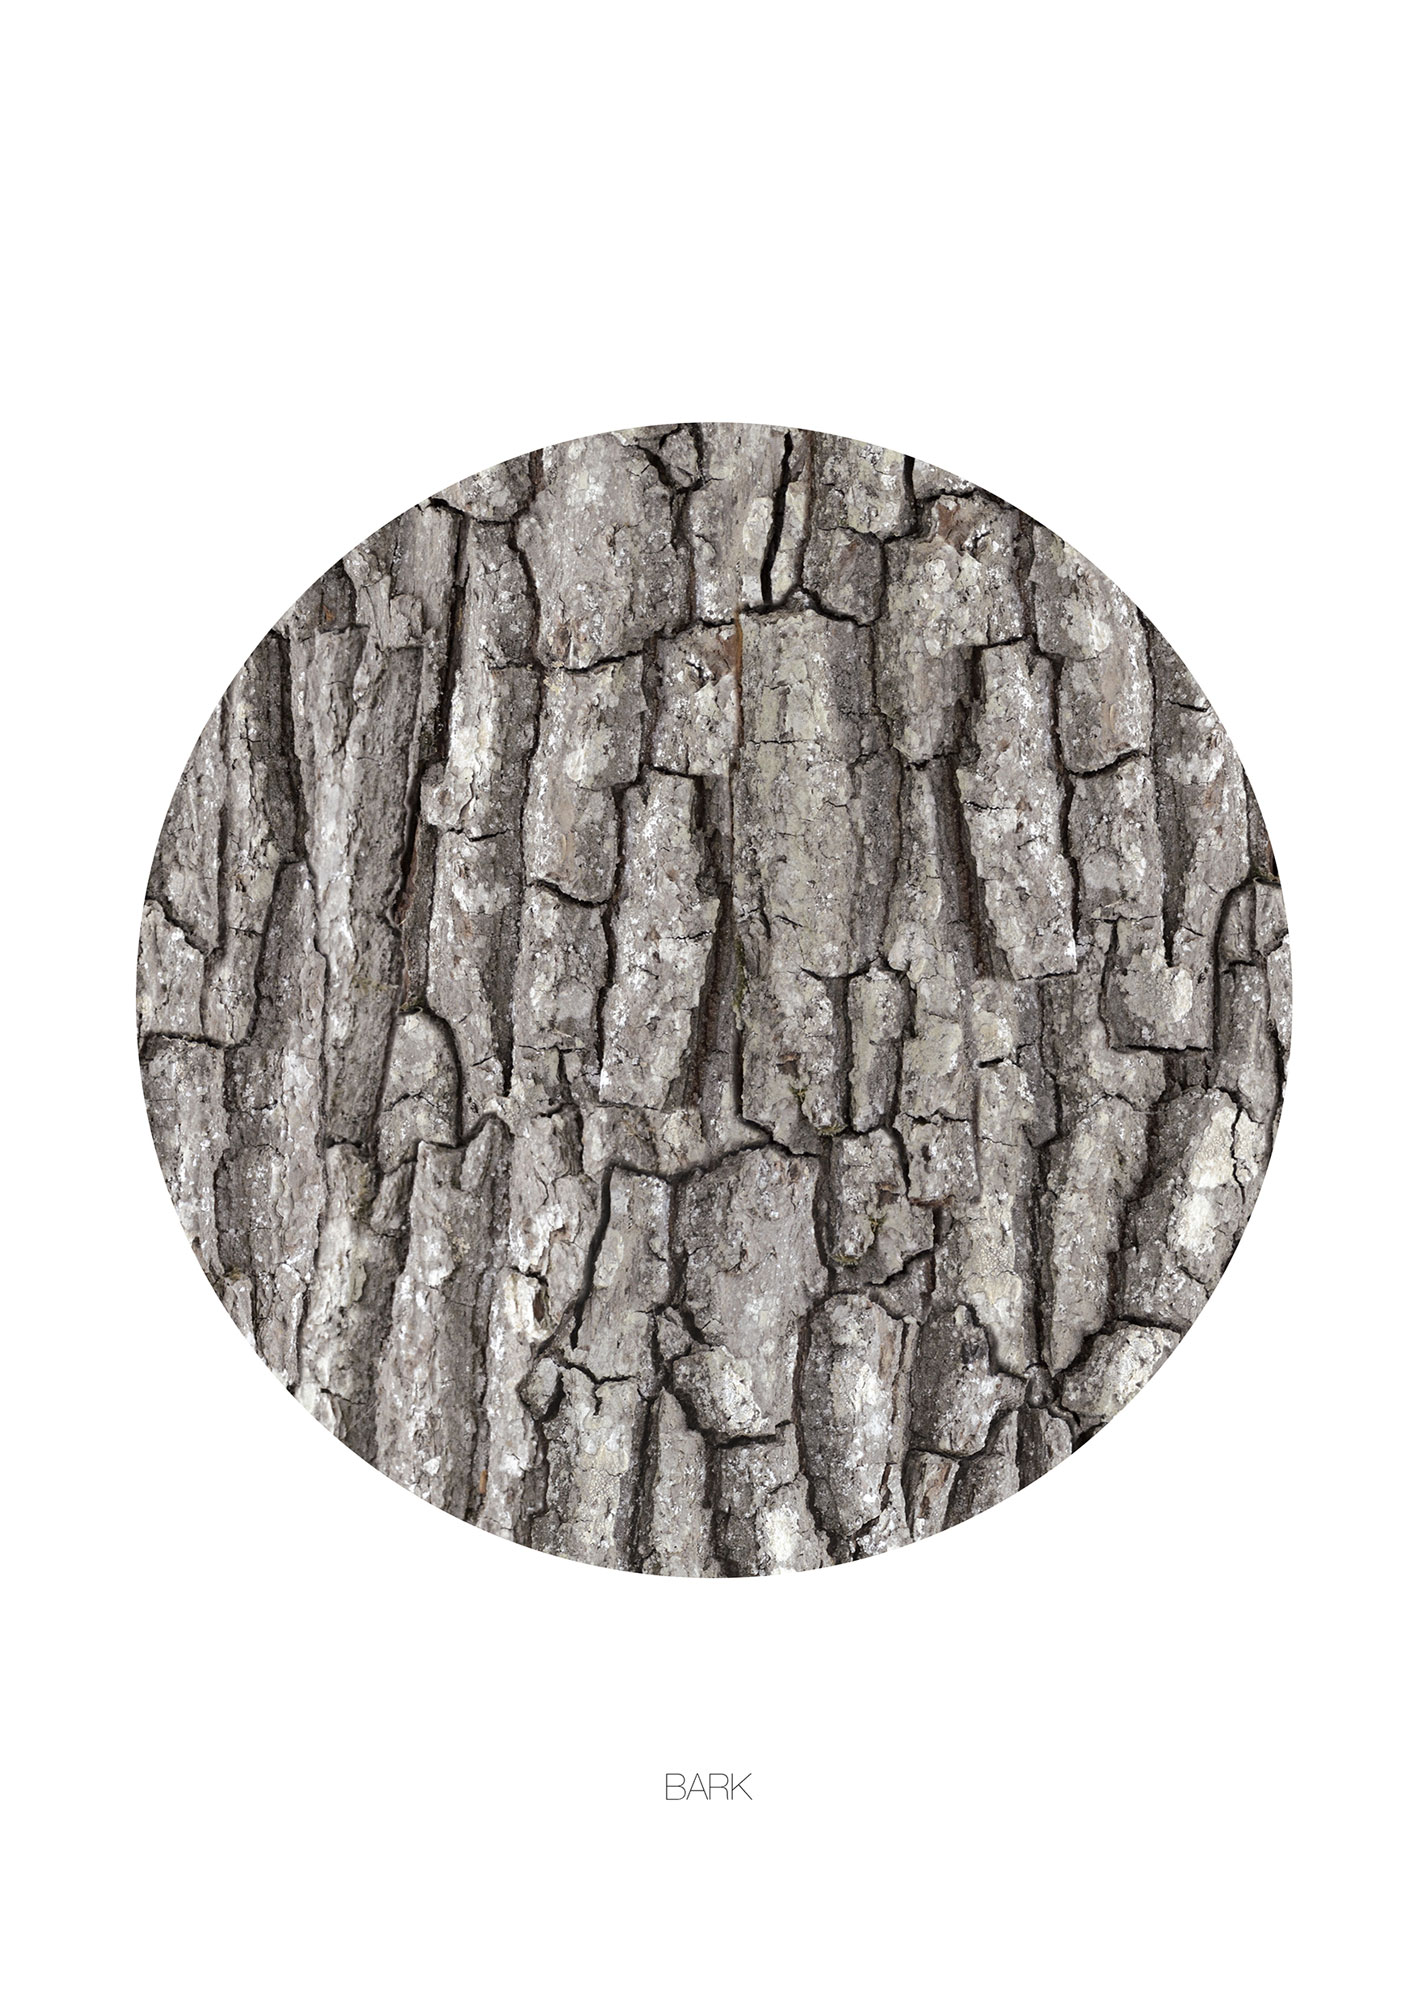 Image of   BARK - CIRCLE-50 x 70